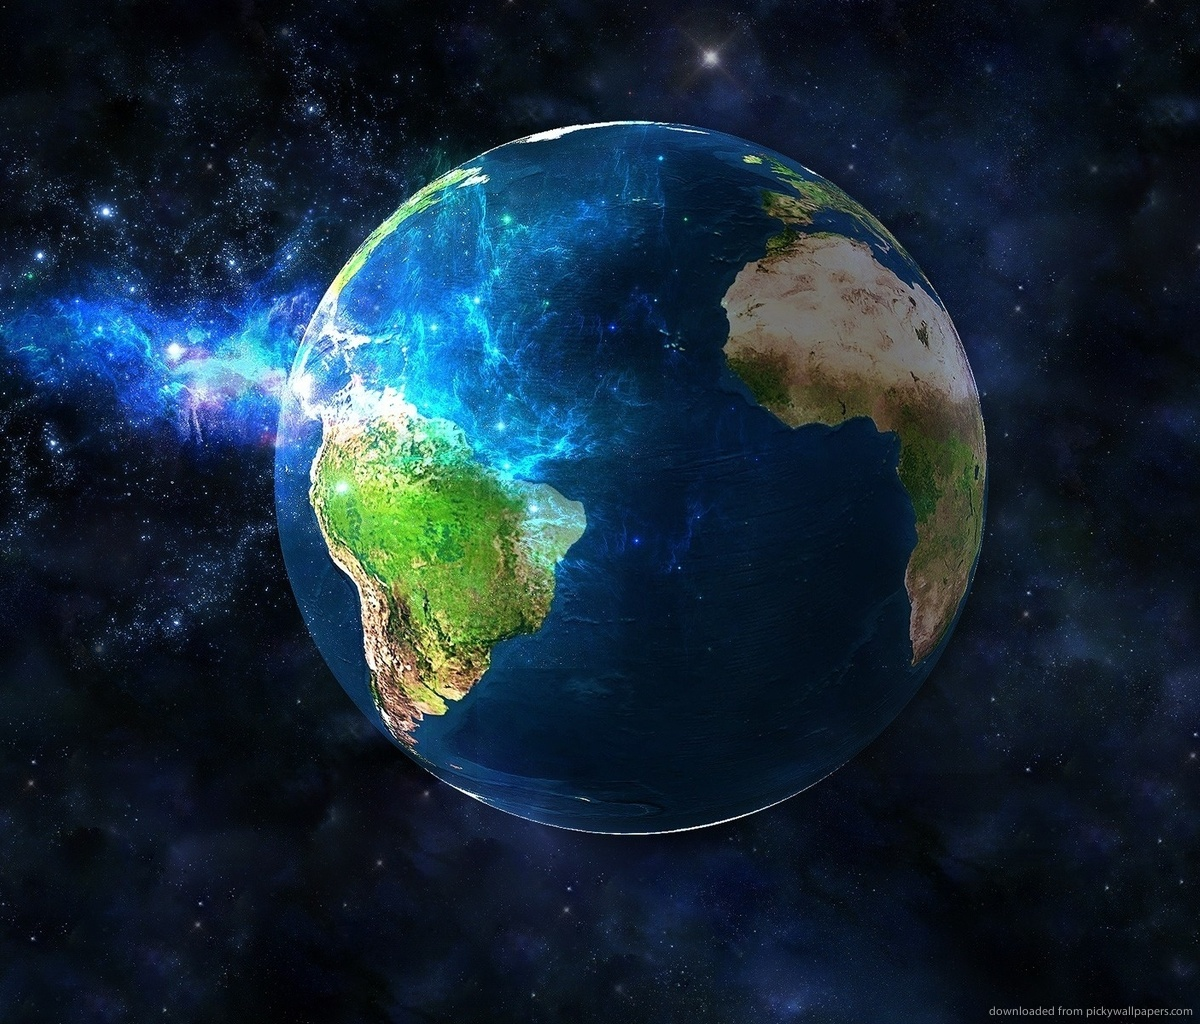 Download 3D Earth Wallpaper For Samsung Galaxy Tab 1200x1024